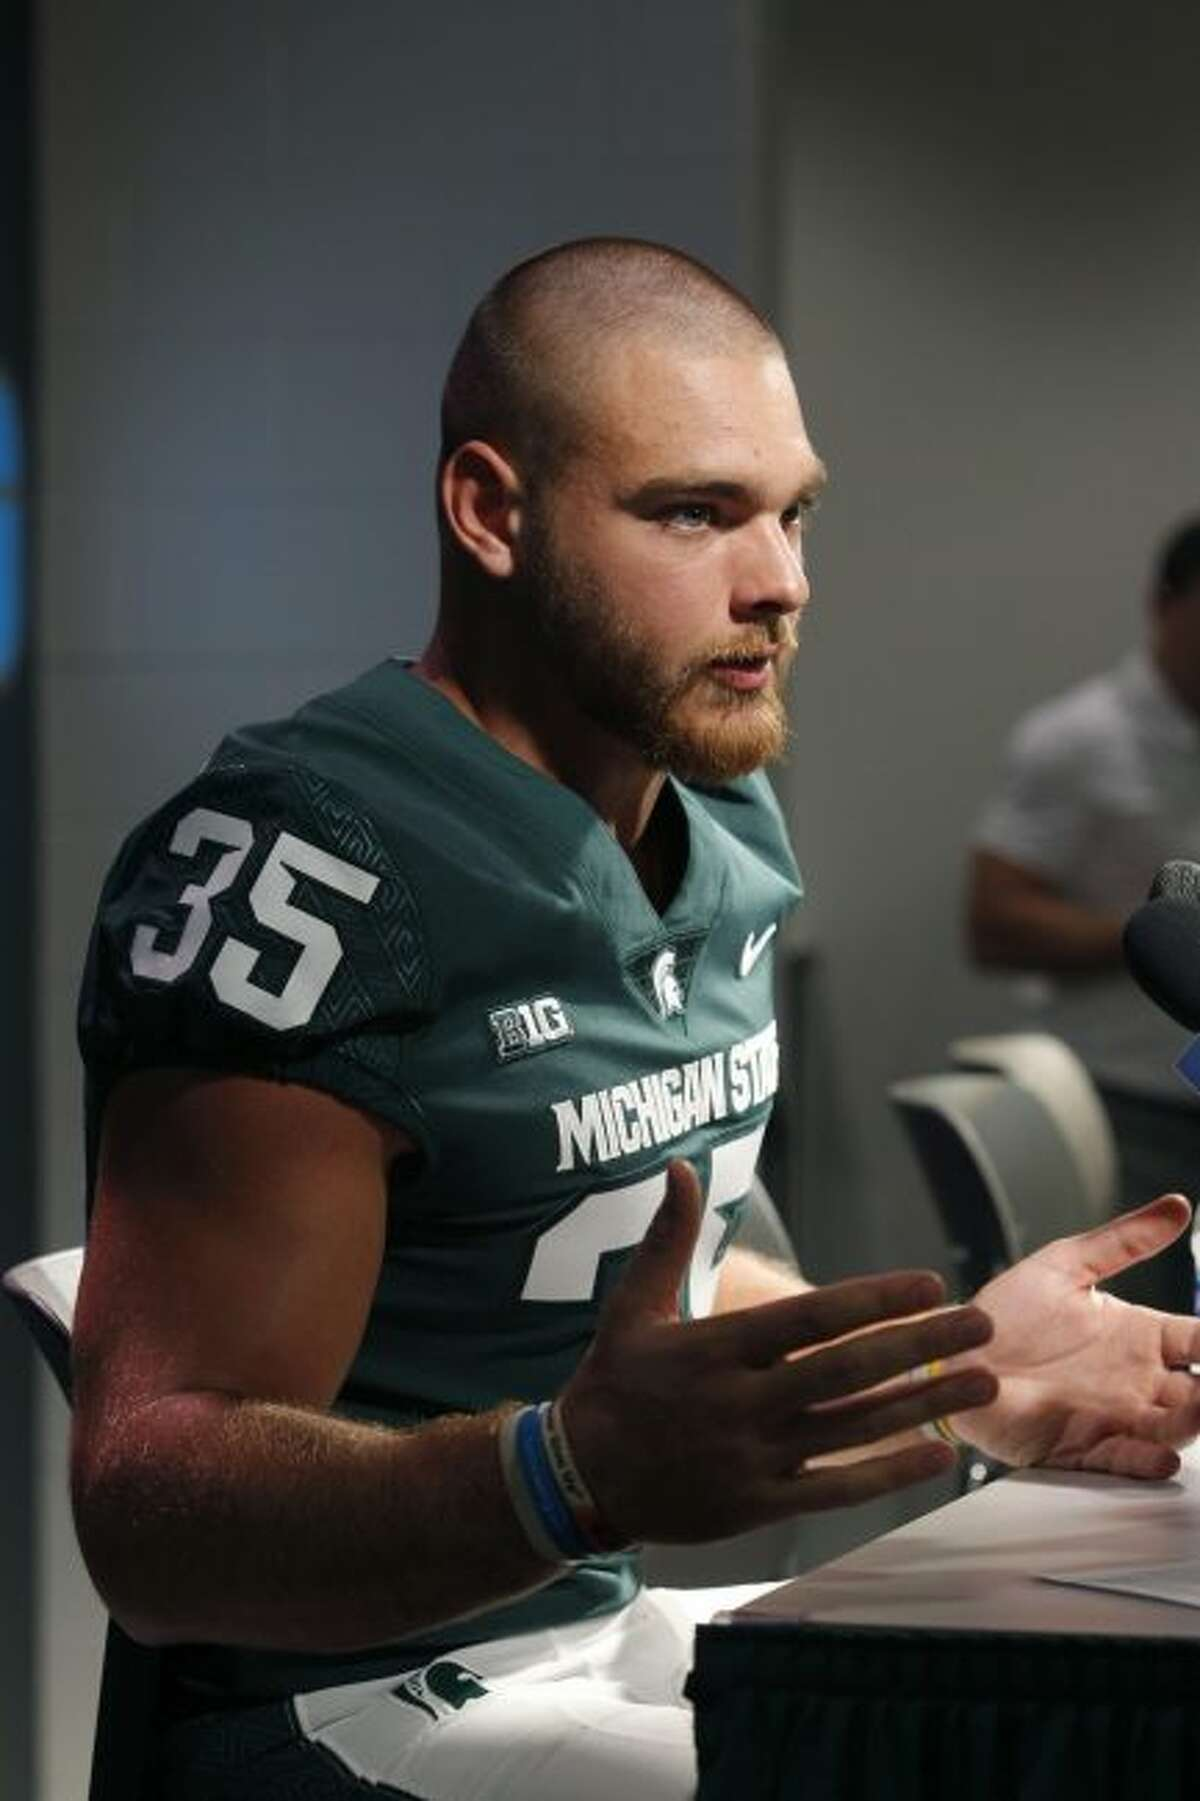 Michigan State linebacker Joe Bachie talks with reporters during the team's NCAA college football media day, Monday, Aug. 6, 2018, in East Lansing, Mich. (AP Photo/Al Goldis)